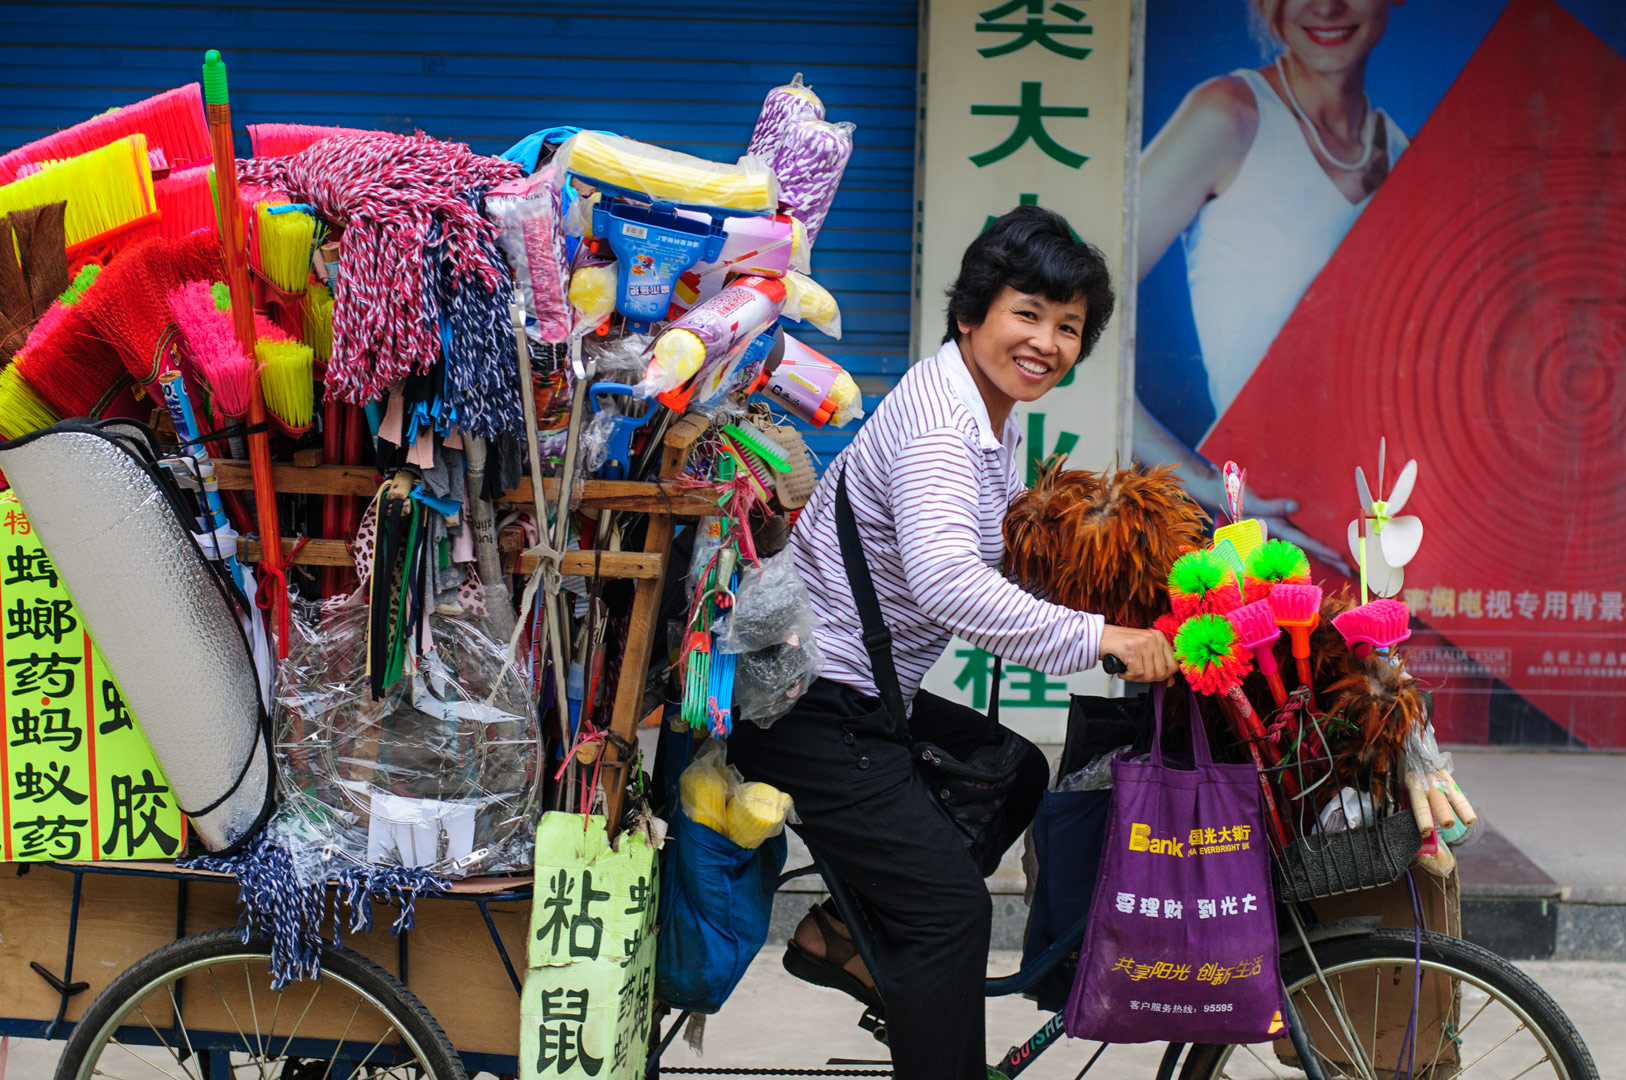 A chinese lady cycles on a cargo bike full of cleaning goods.